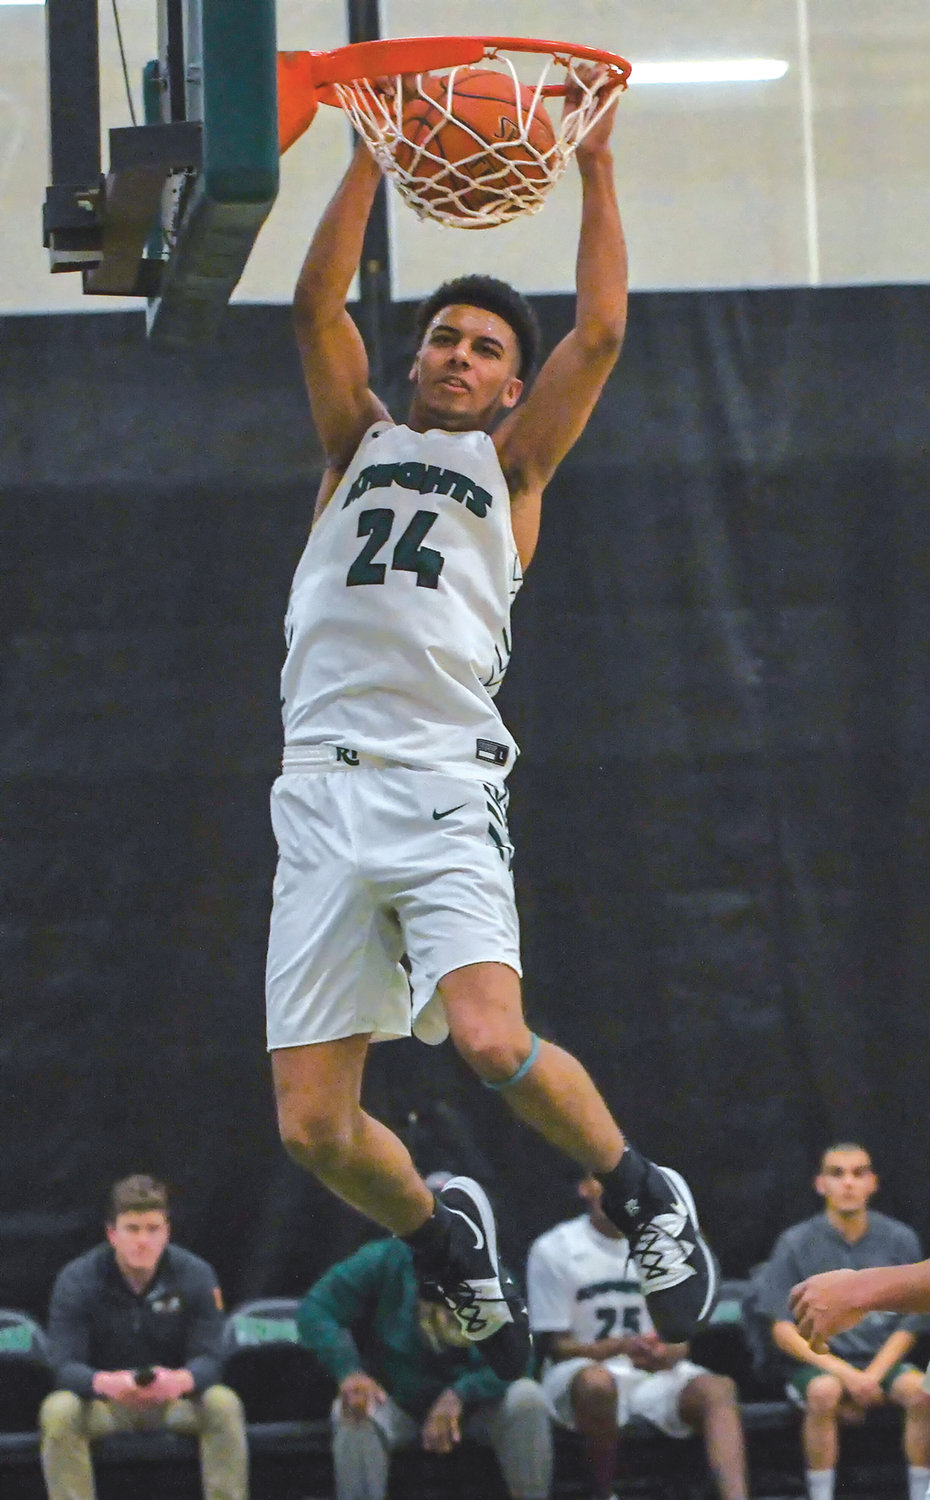 DUNK: CCRI's Mitchel Noresca throws down a slam dunk.